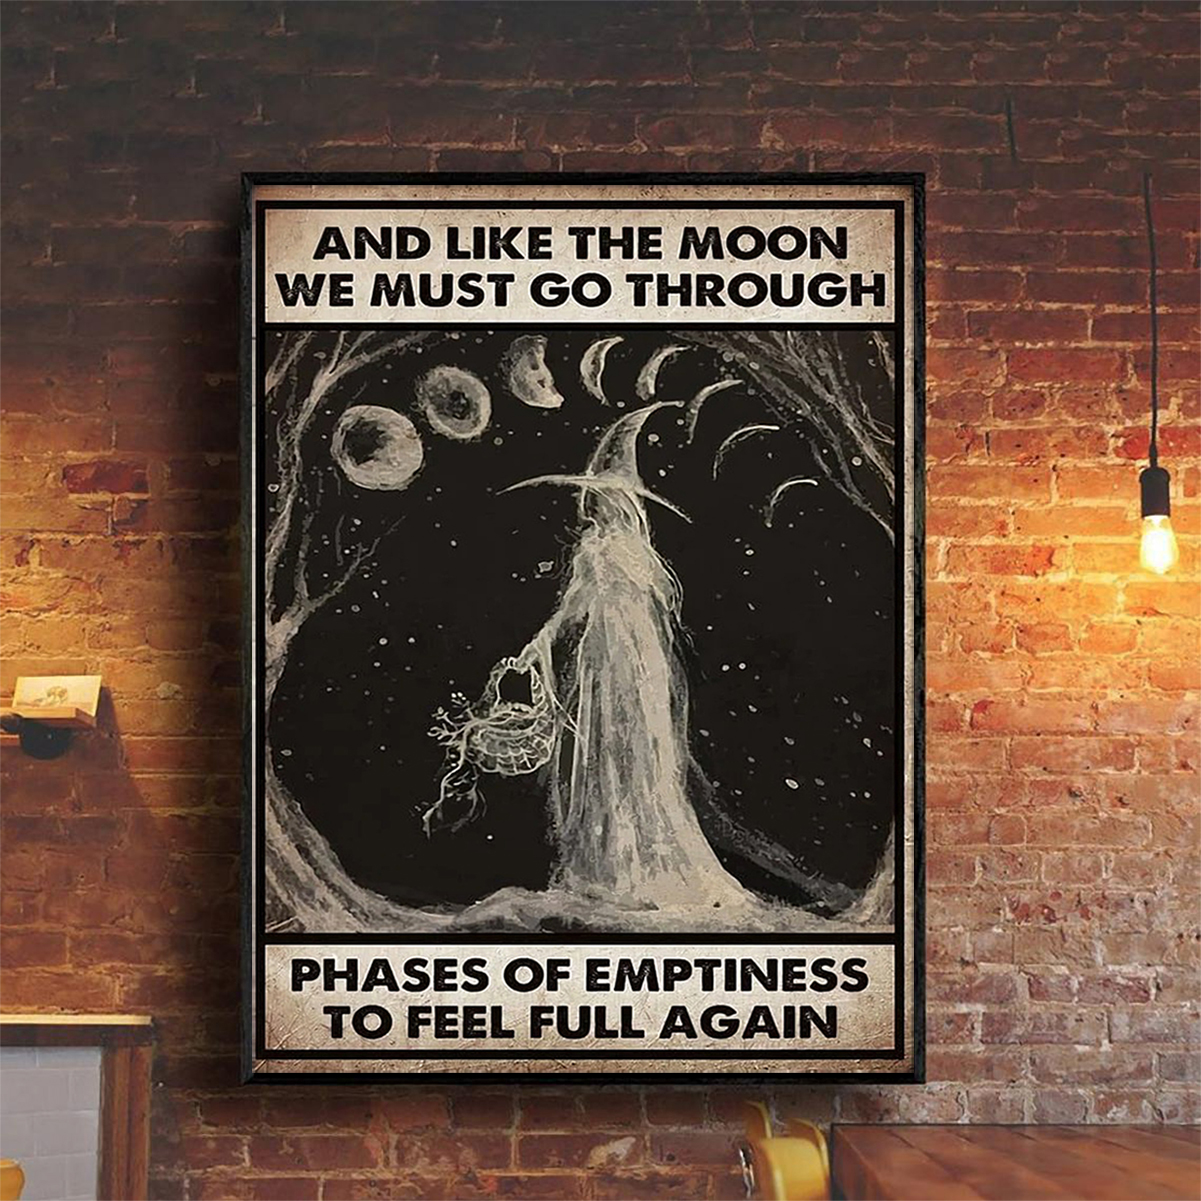 Witch And like the moon we must go through phases of emptiness to feel full again poster A2